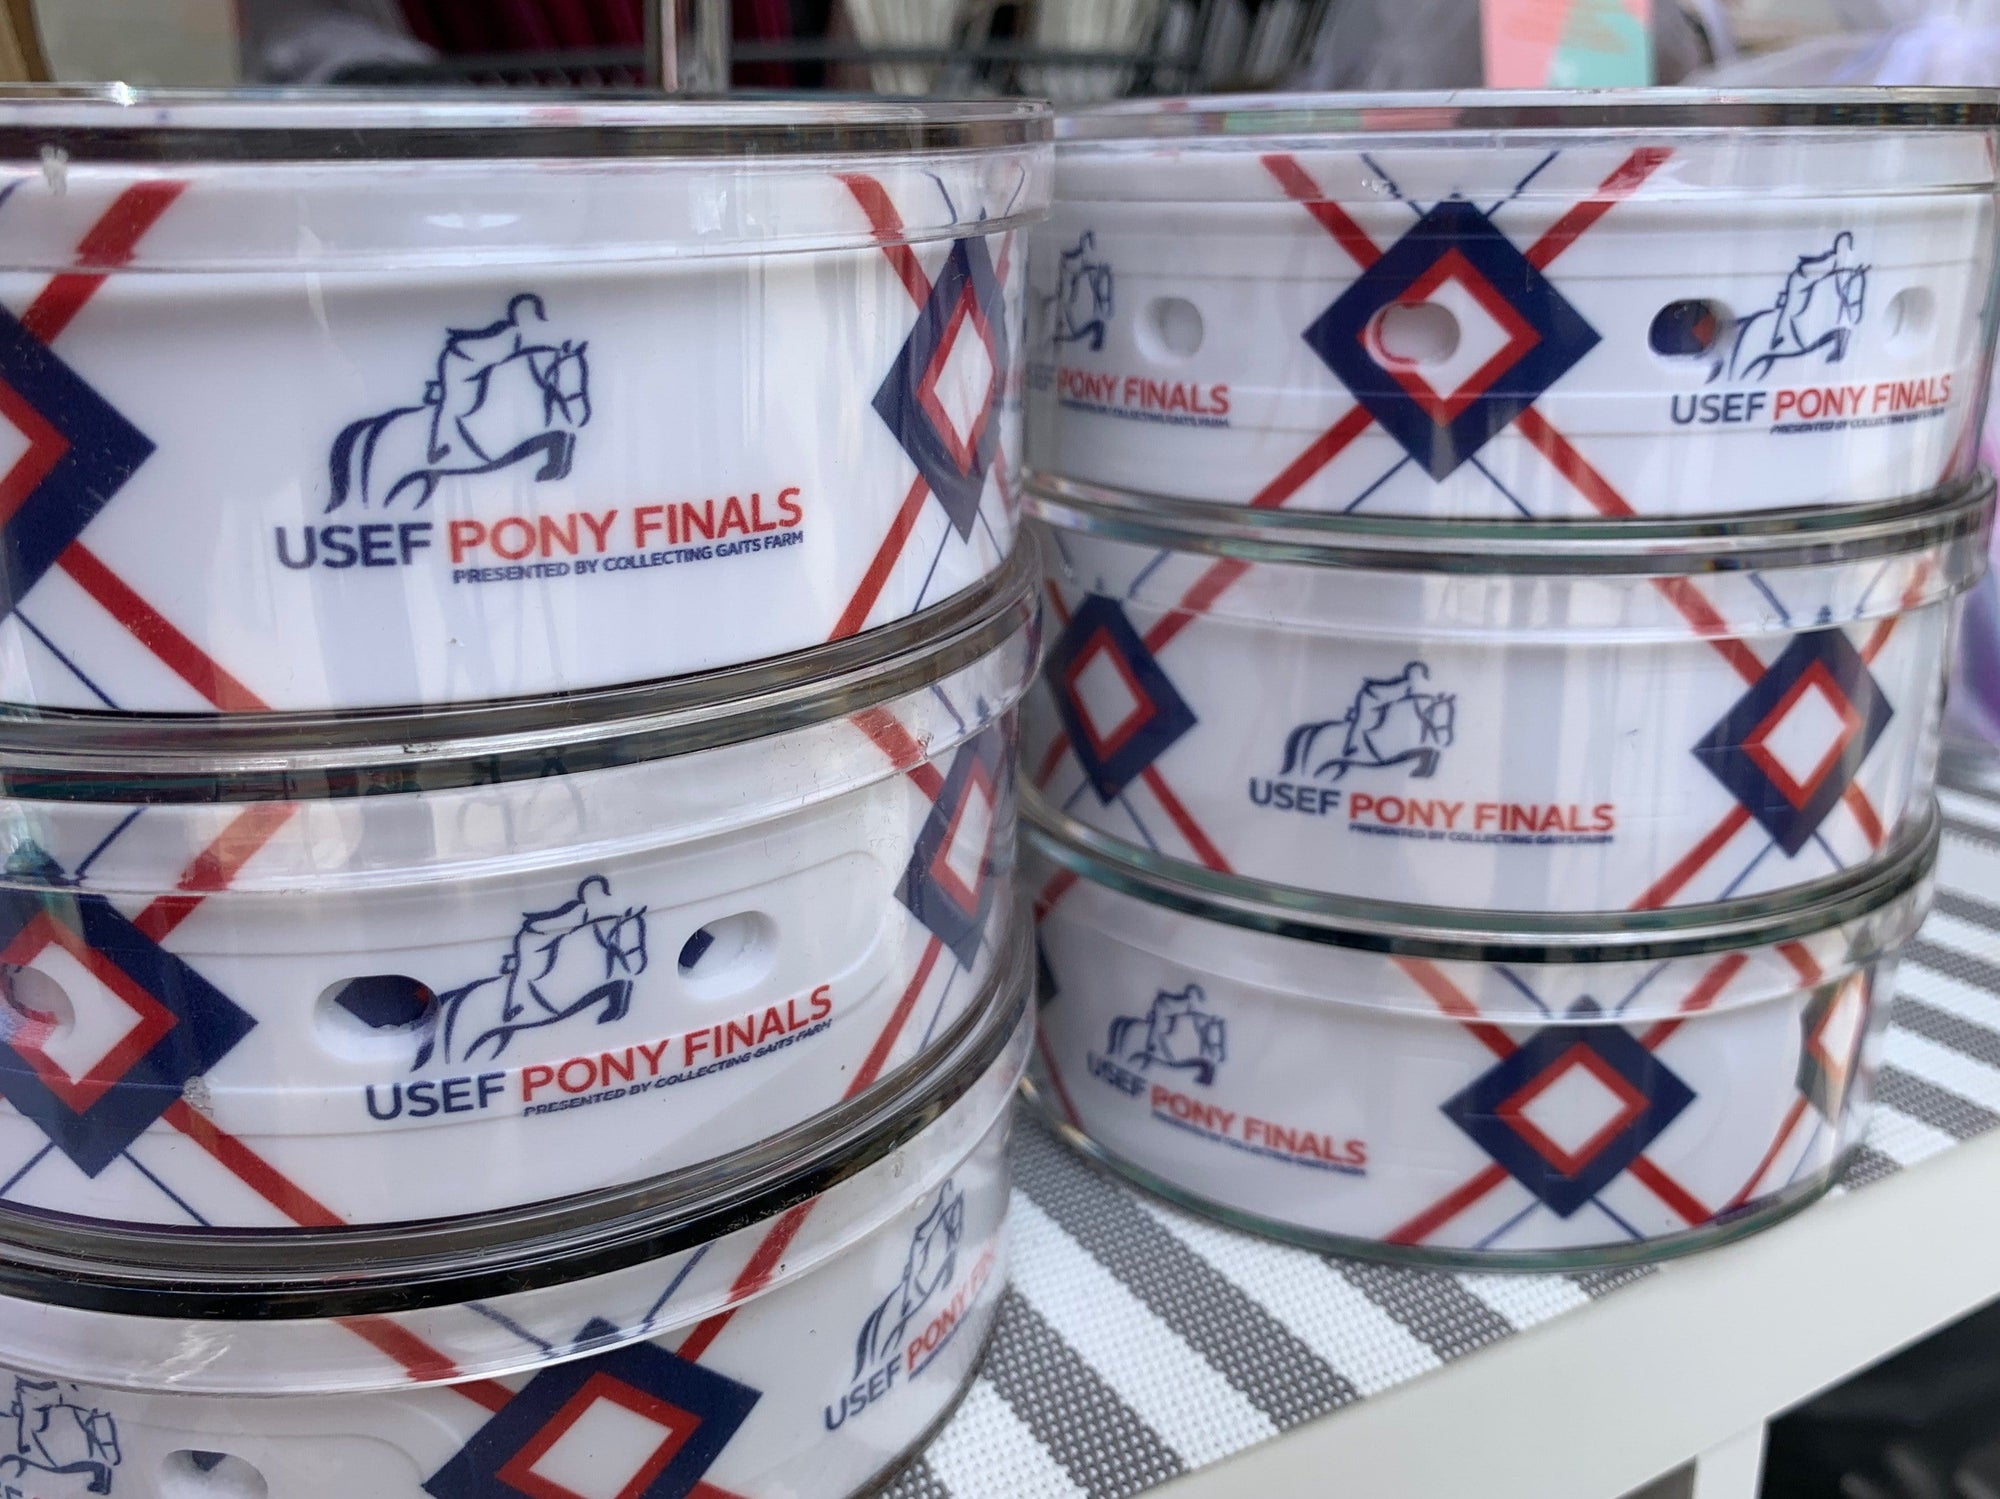 Equestrian Team Apparel Belt Exclusive Pony Finals C4 Belt equestrian team apparel online tack store mobile tack store custom farm apparel custom show stable clothing equestrian lifestyle horse show clothing riding clothes horses equestrian tack store